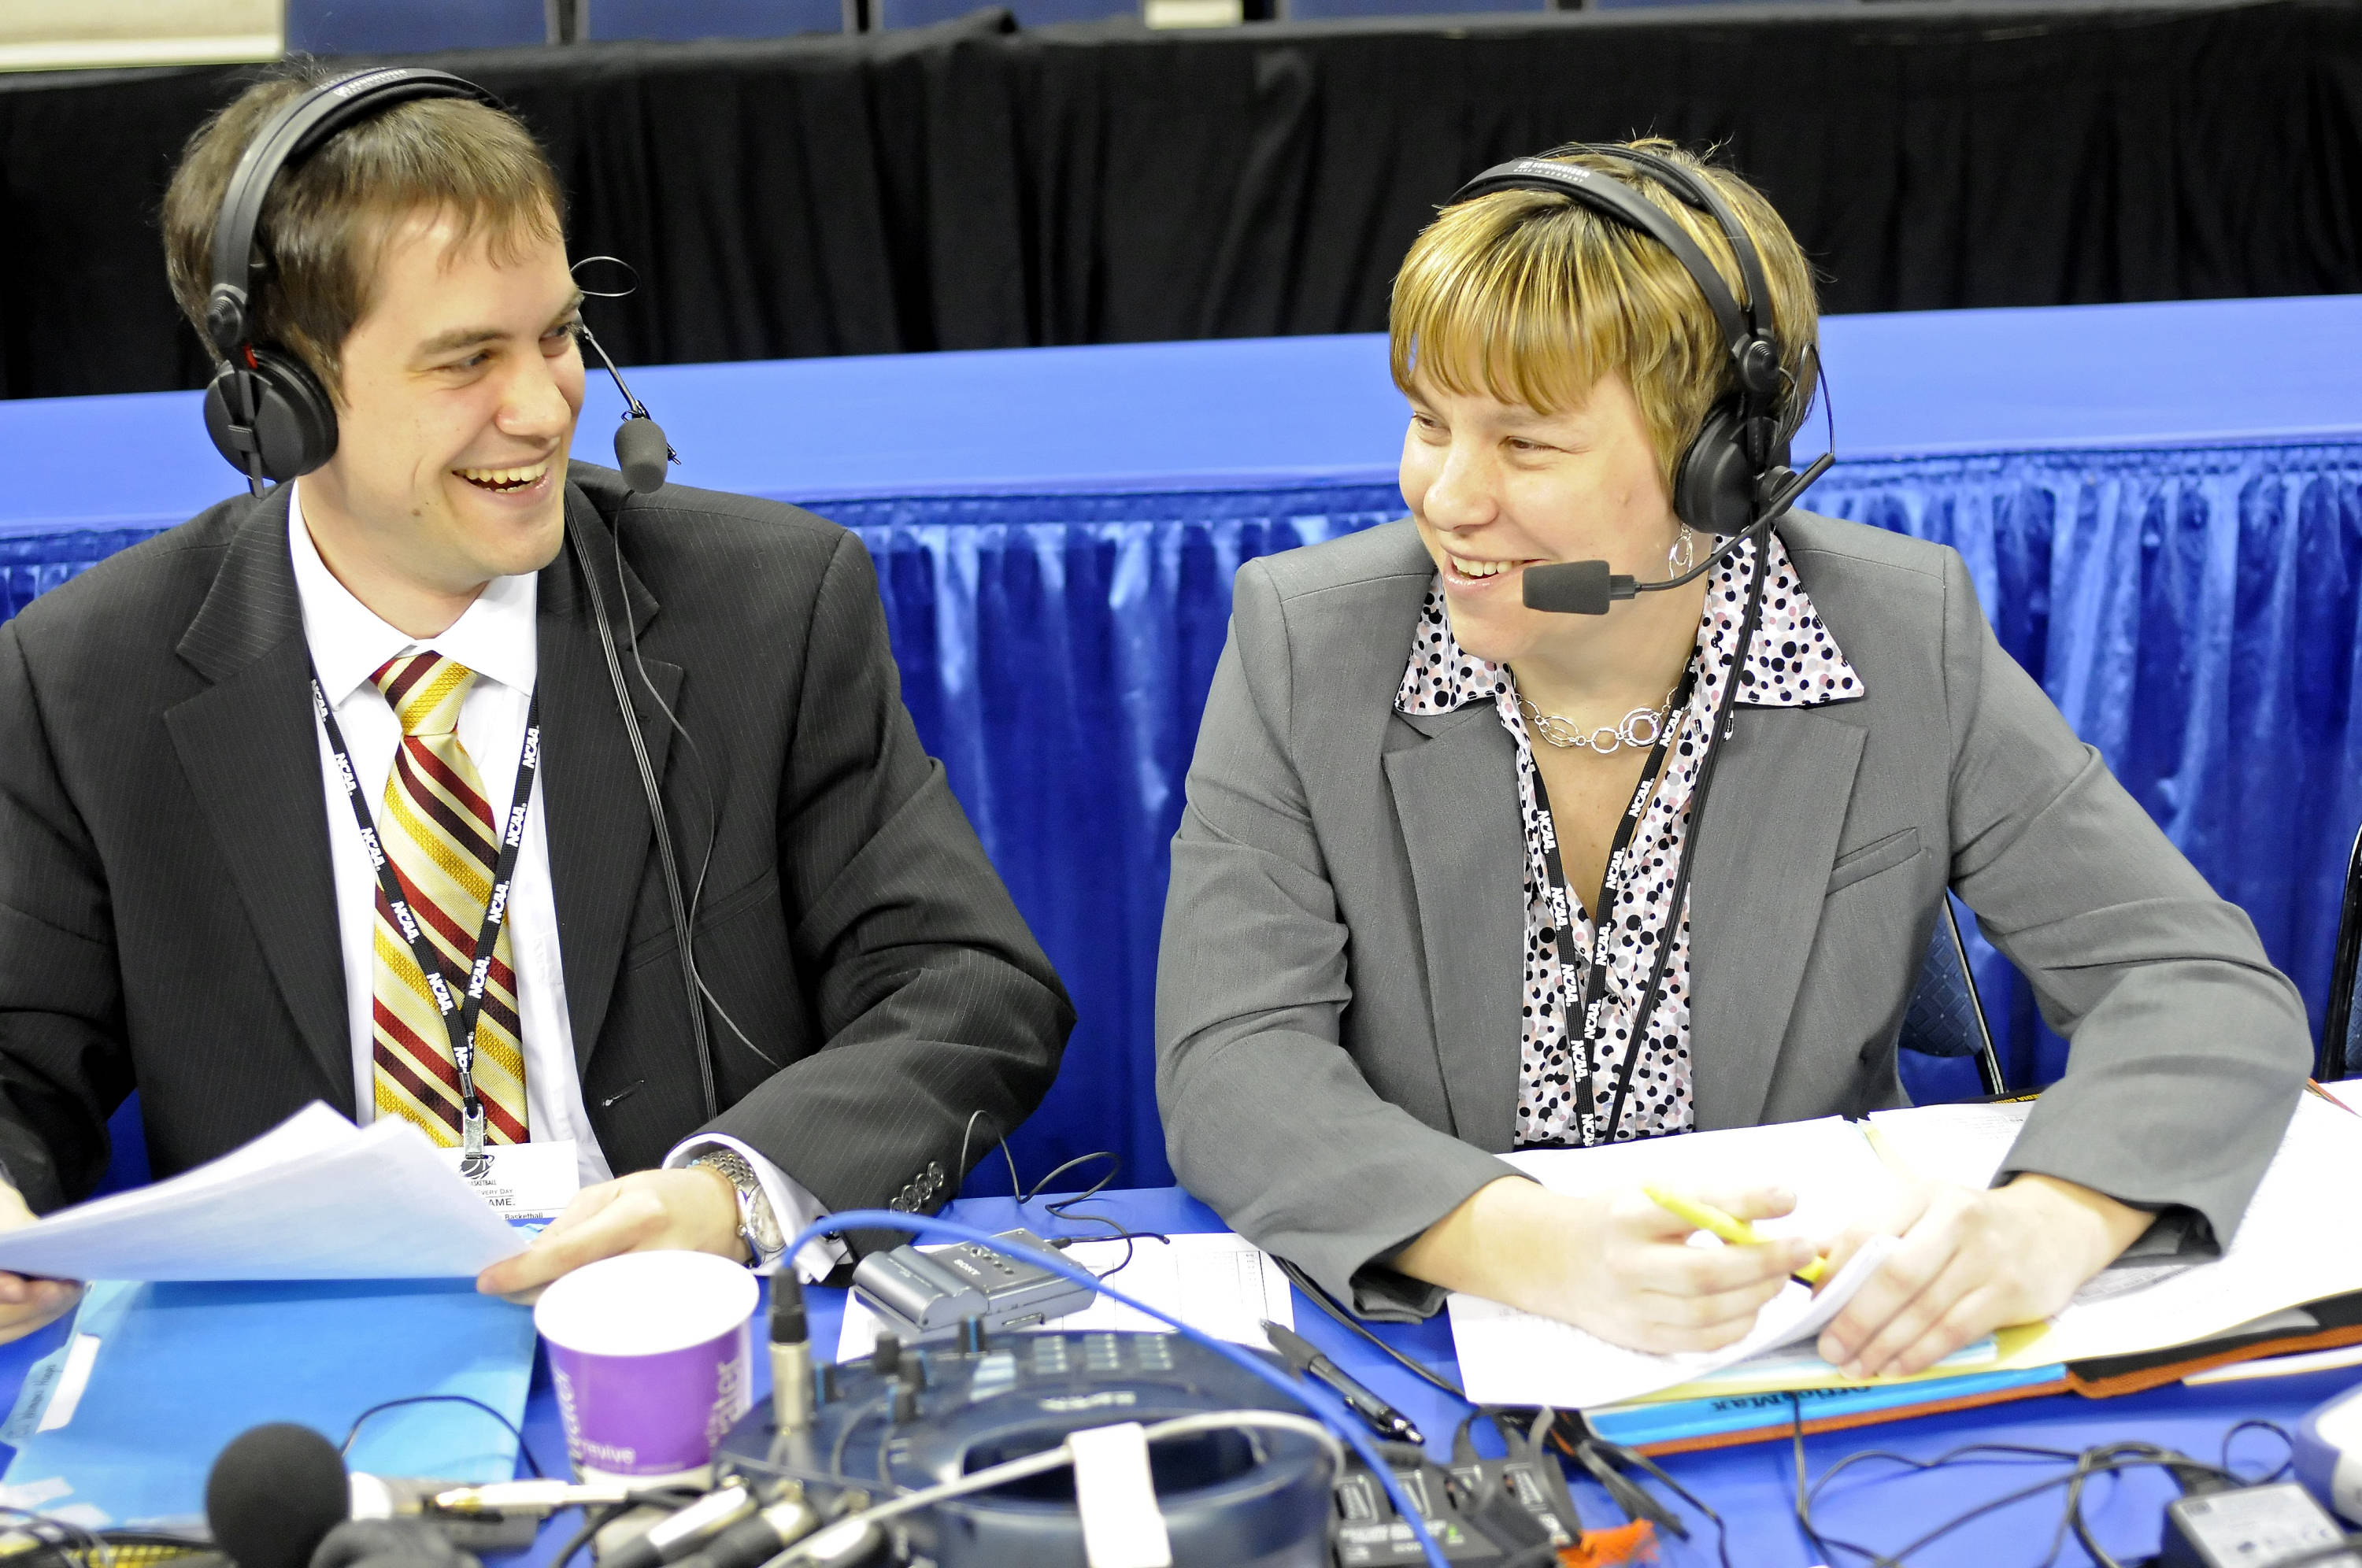 Sept. 11 ... Ryan Pensy and Melissa Bruner call all the action for the radio broadcast at every women's basketball game both on the road and at home.